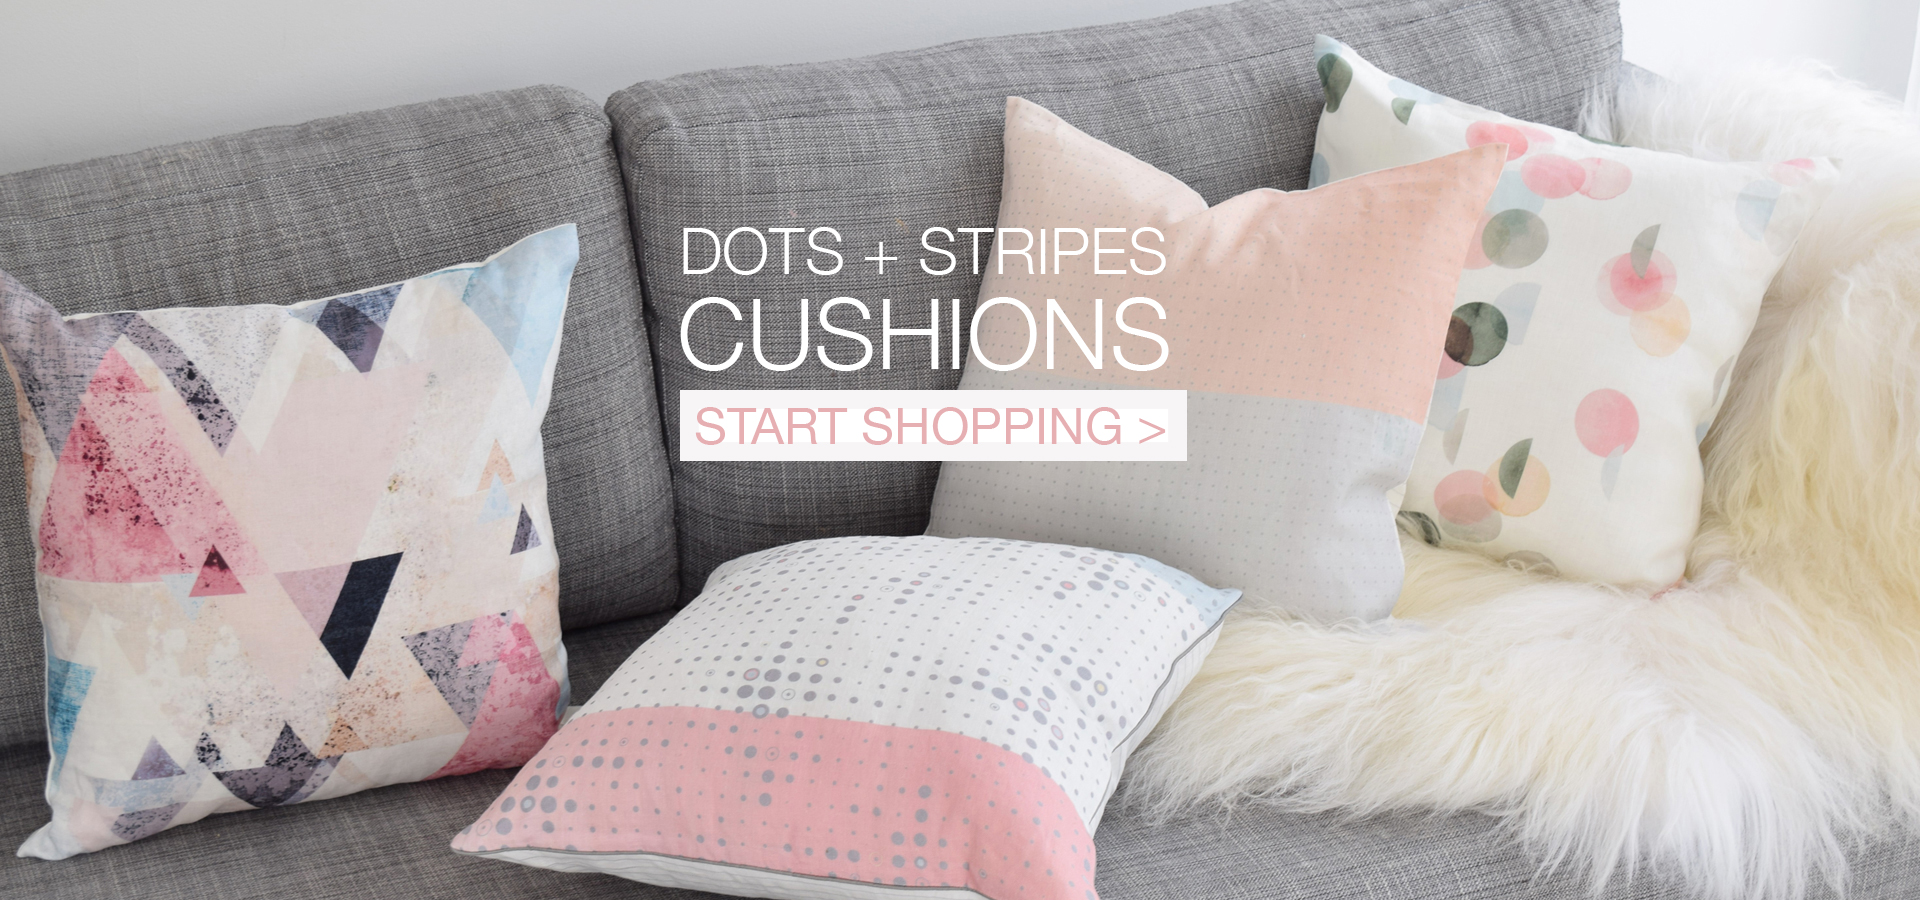 Dots+Stripes-Linen-Cushions-On-Sofa-Start-Shopping